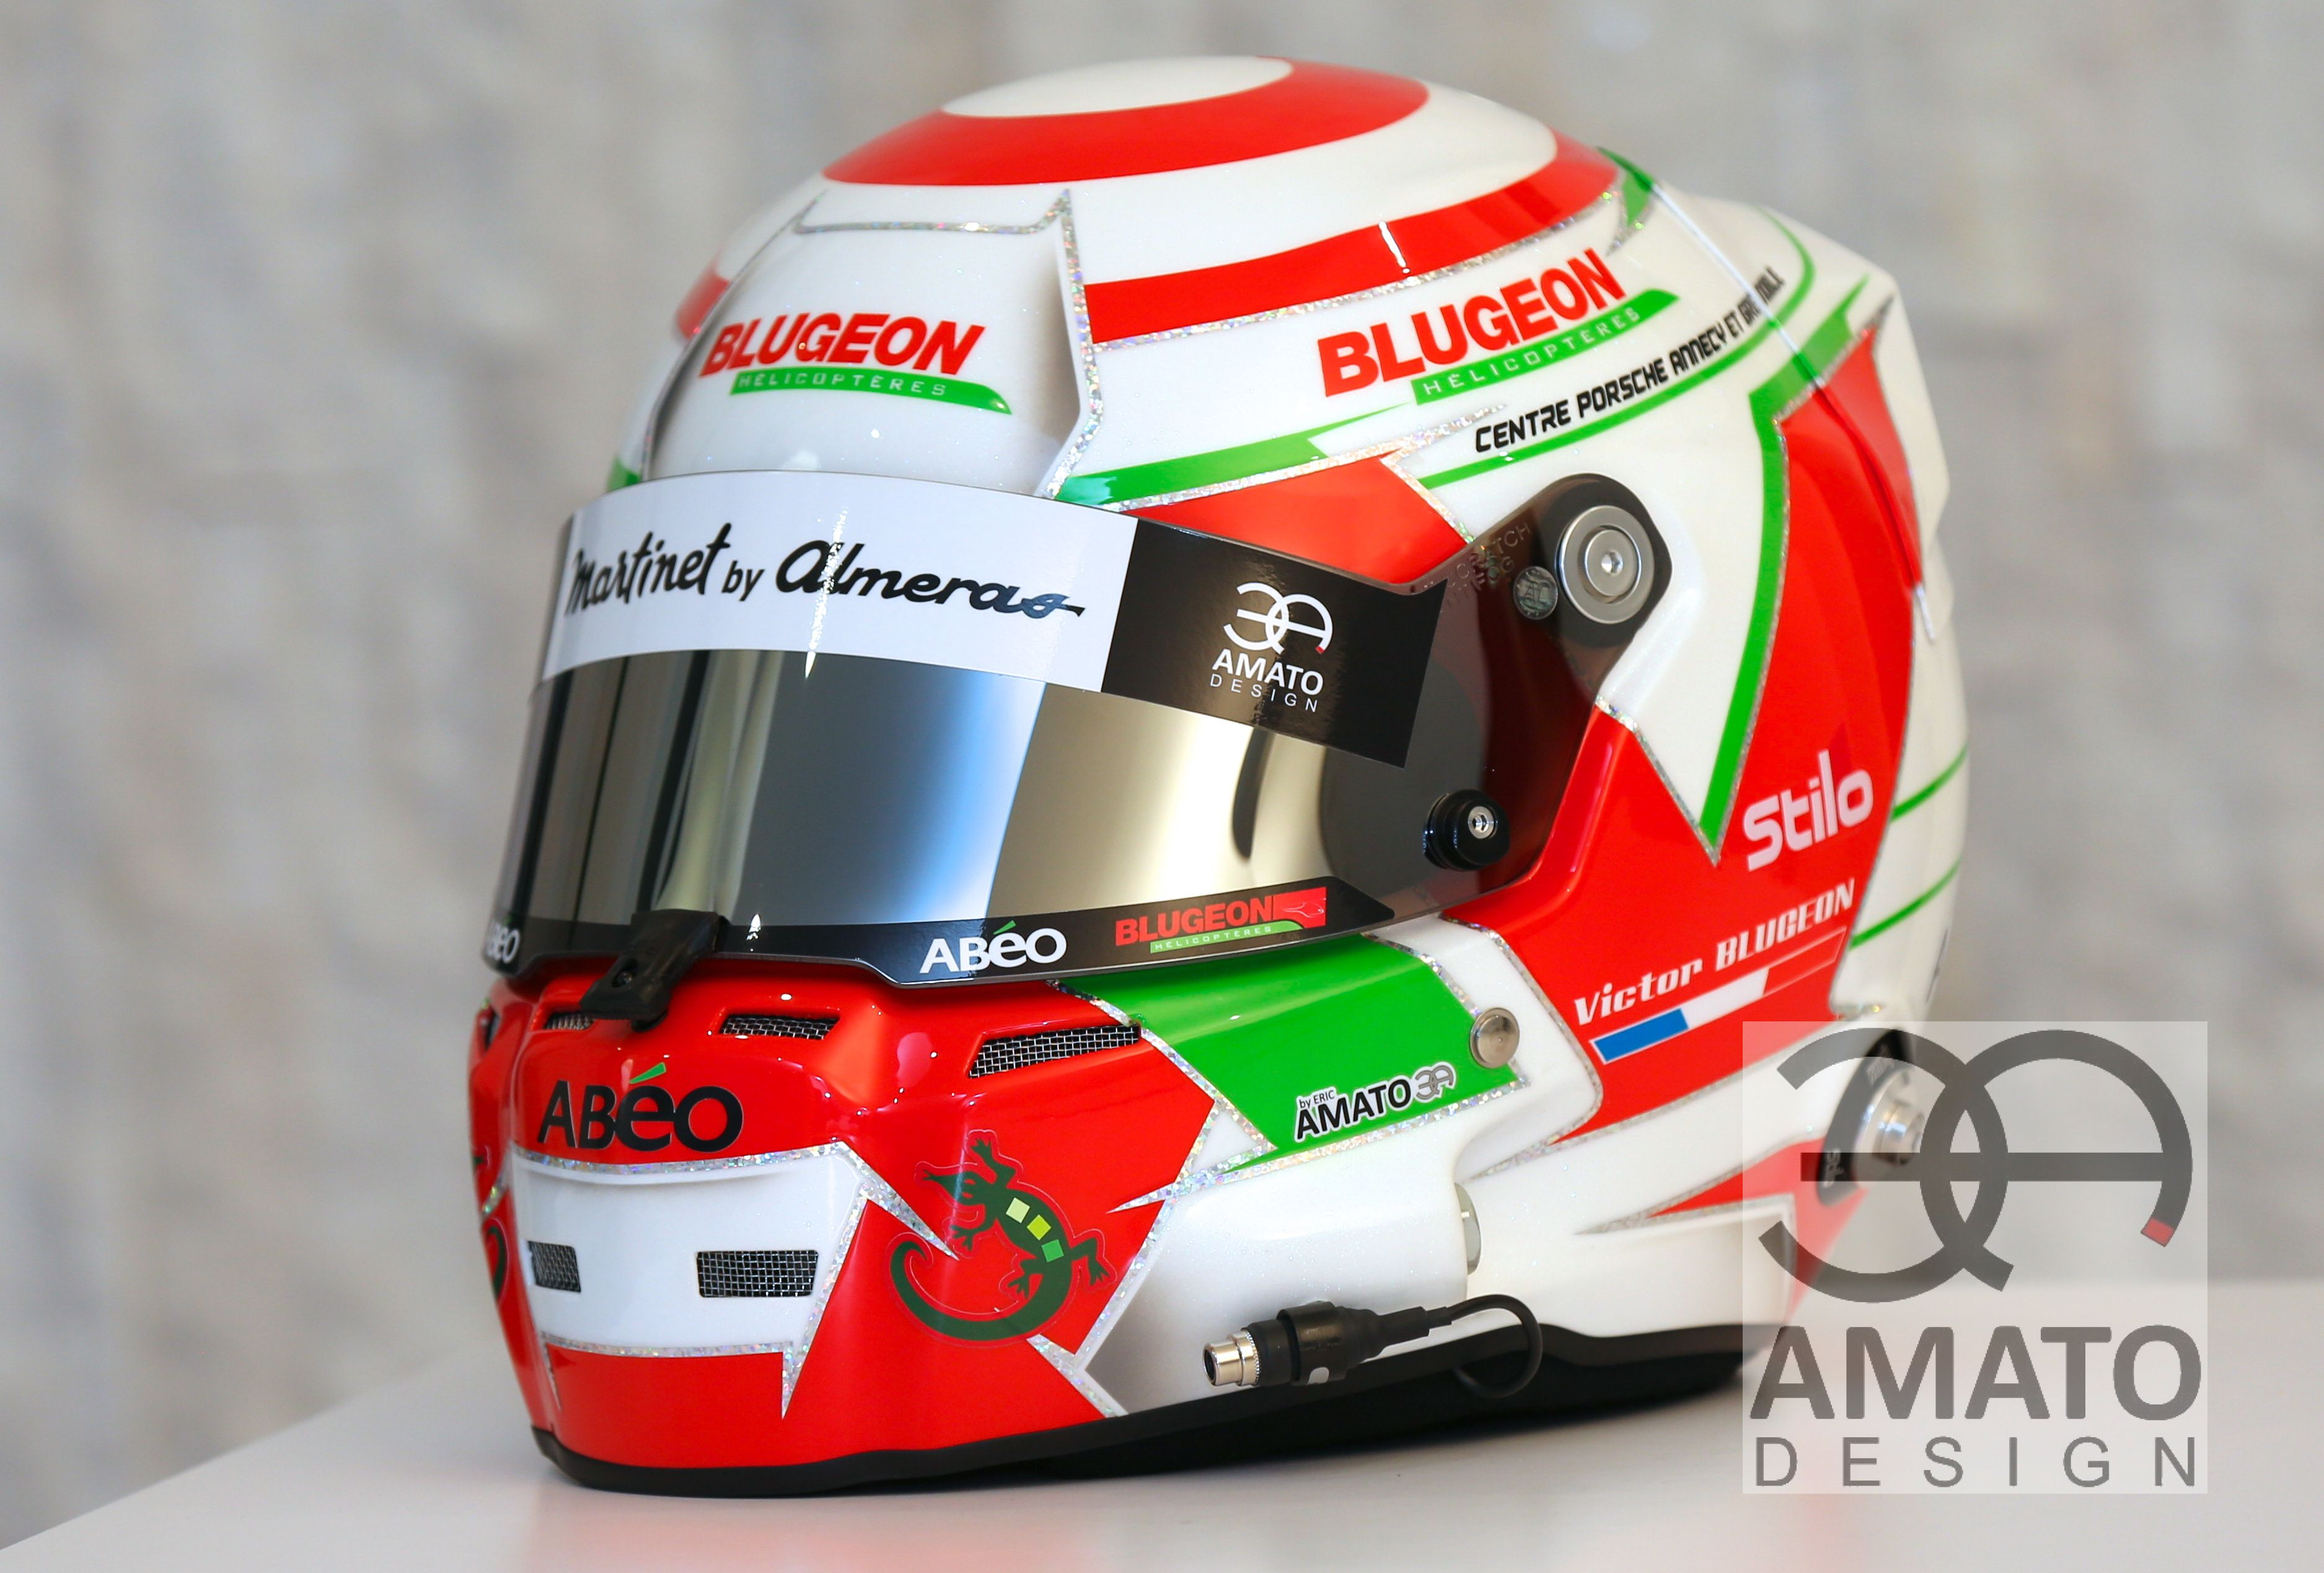 CASQUE AMATO DESING - VICTOR BLUGEON